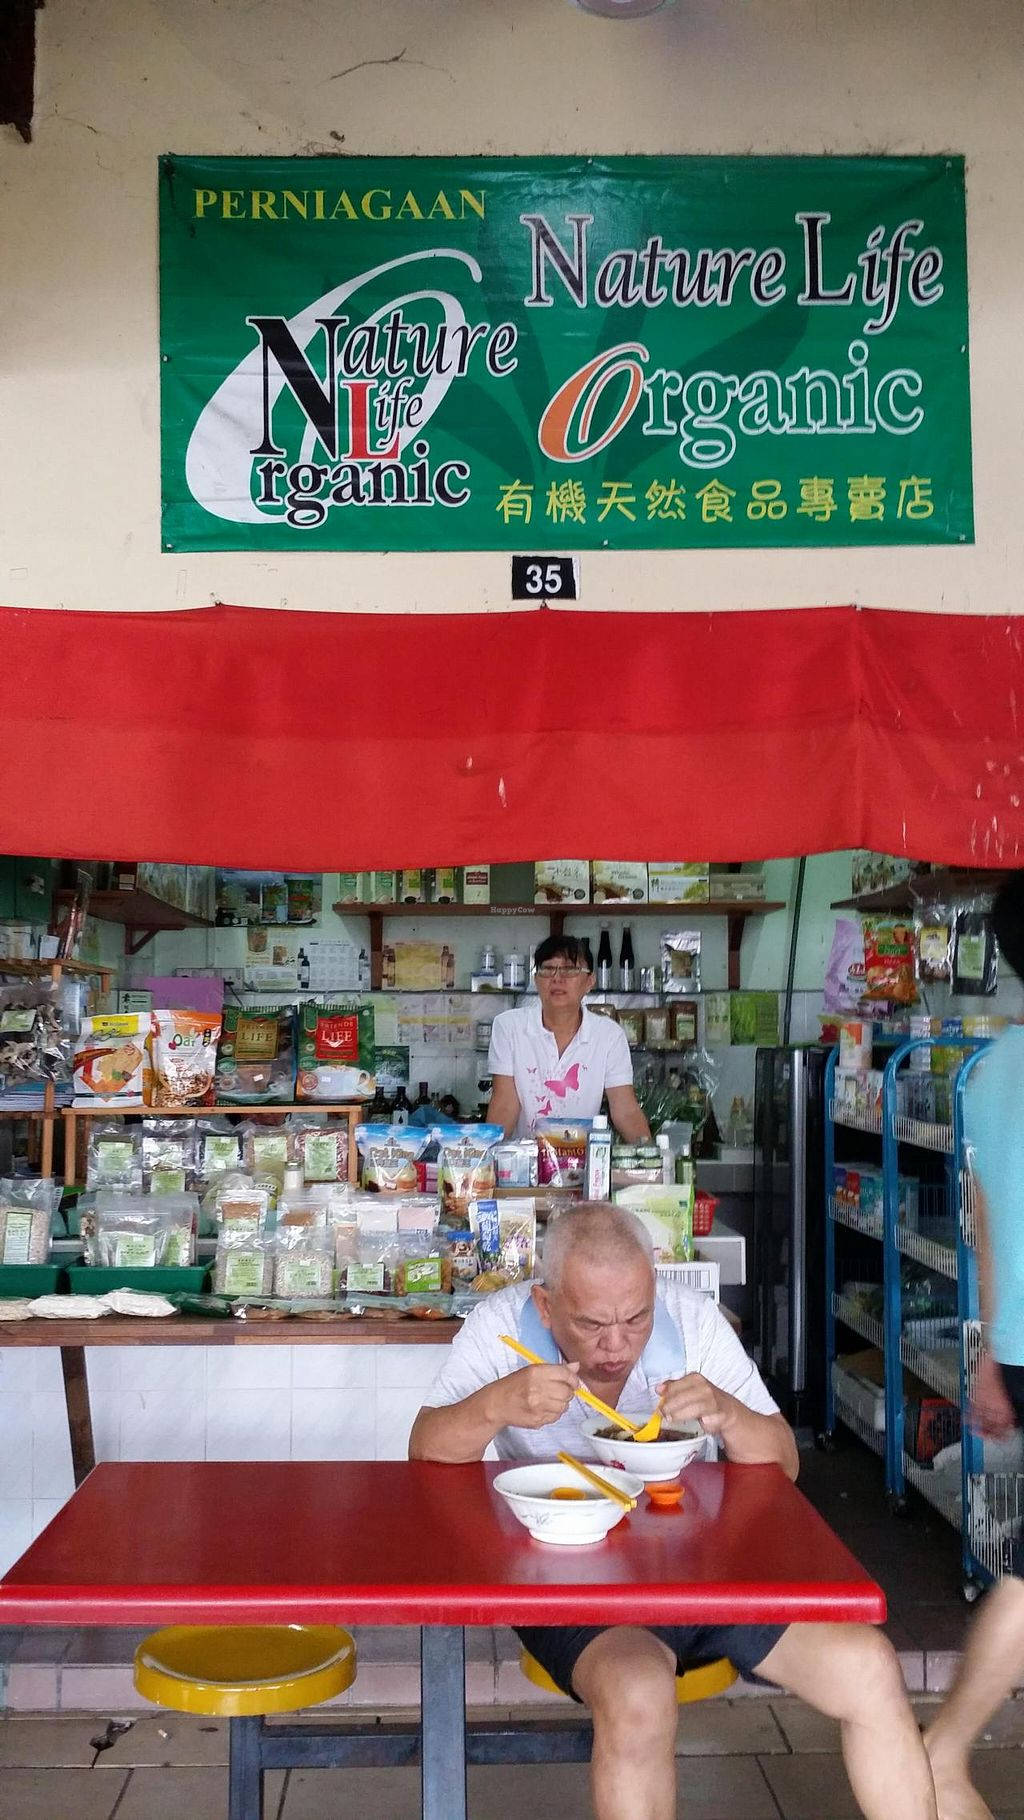 """Photo of Pasar Awam - Vegetarian Stalls  by <a href=""""/members/profile/walter007"""">walter007</a> <br/>Stall 35 <br/> May 3, 2014  - <a href='/contact/abuse/image/46964/69287'>Report</a>"""